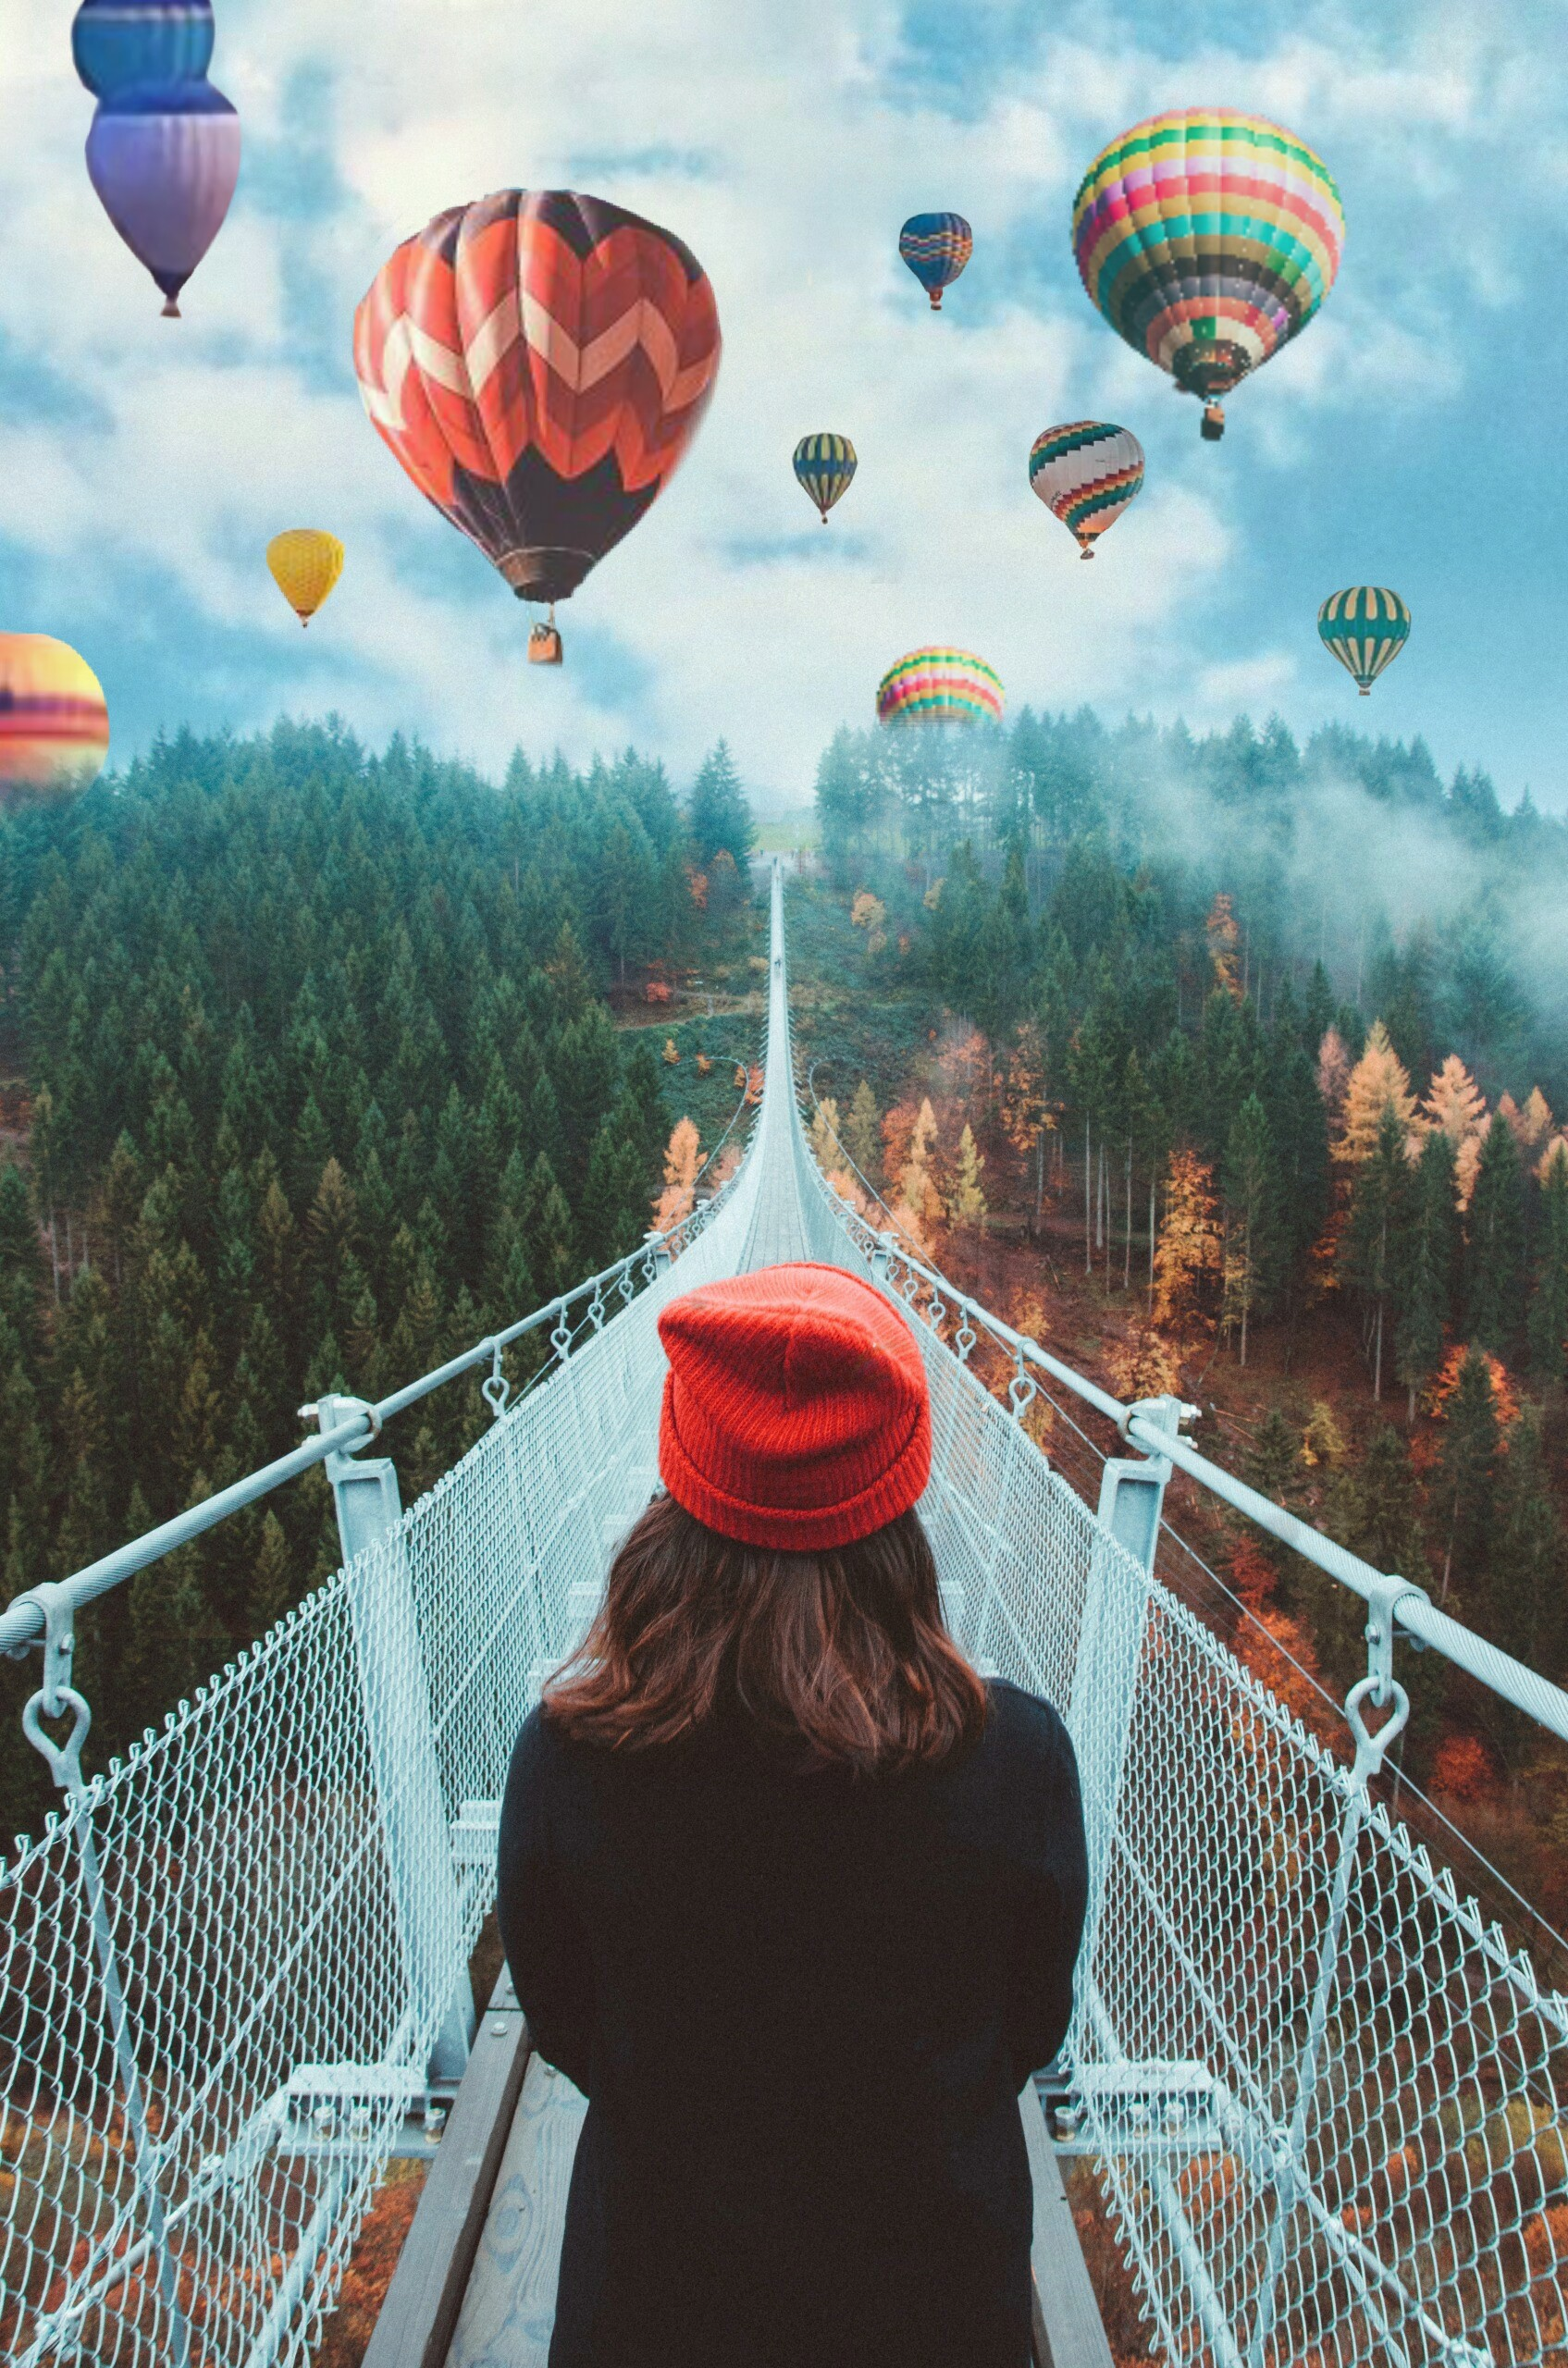 #hotairballoon #person #people #human #model #girl #interesting #sky #clouds #bridge #trees #hat #digitalart #art #photography #photography #edit #nature #